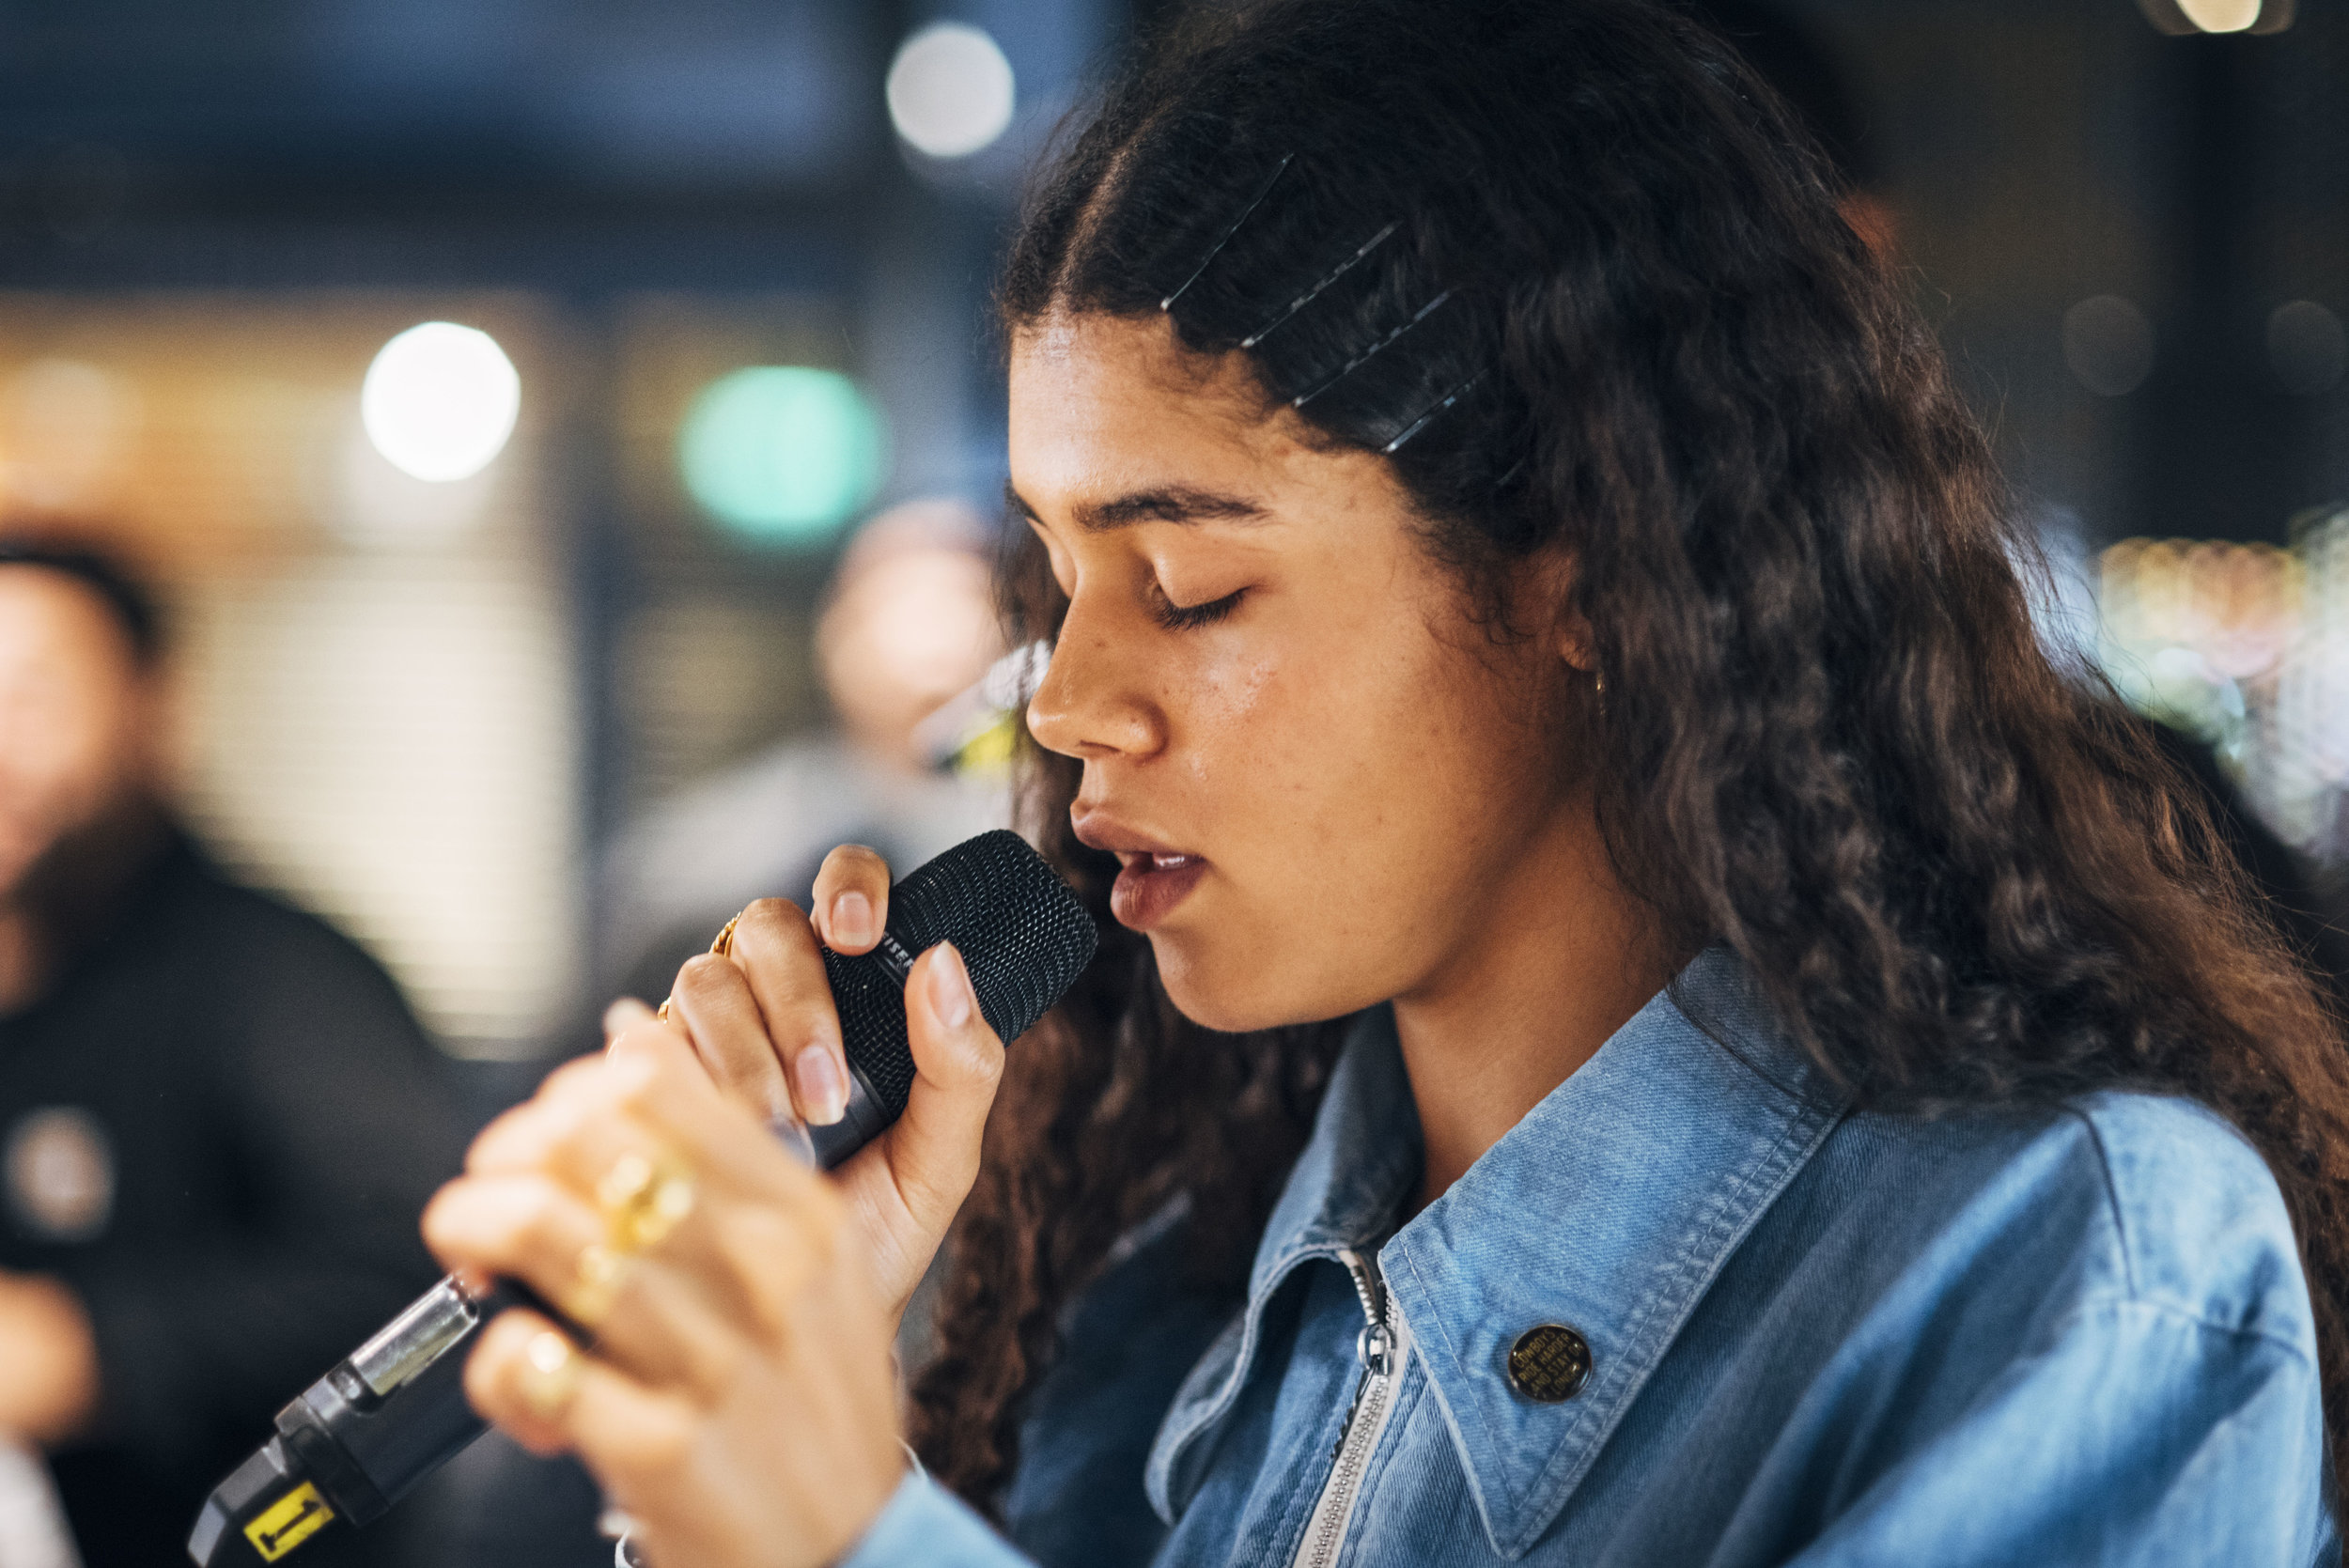 activation - Host an intimate London gig featuring Ama Lou in the Clarks Originals store to a small group of creatives - with an initial gifting suite and dinner